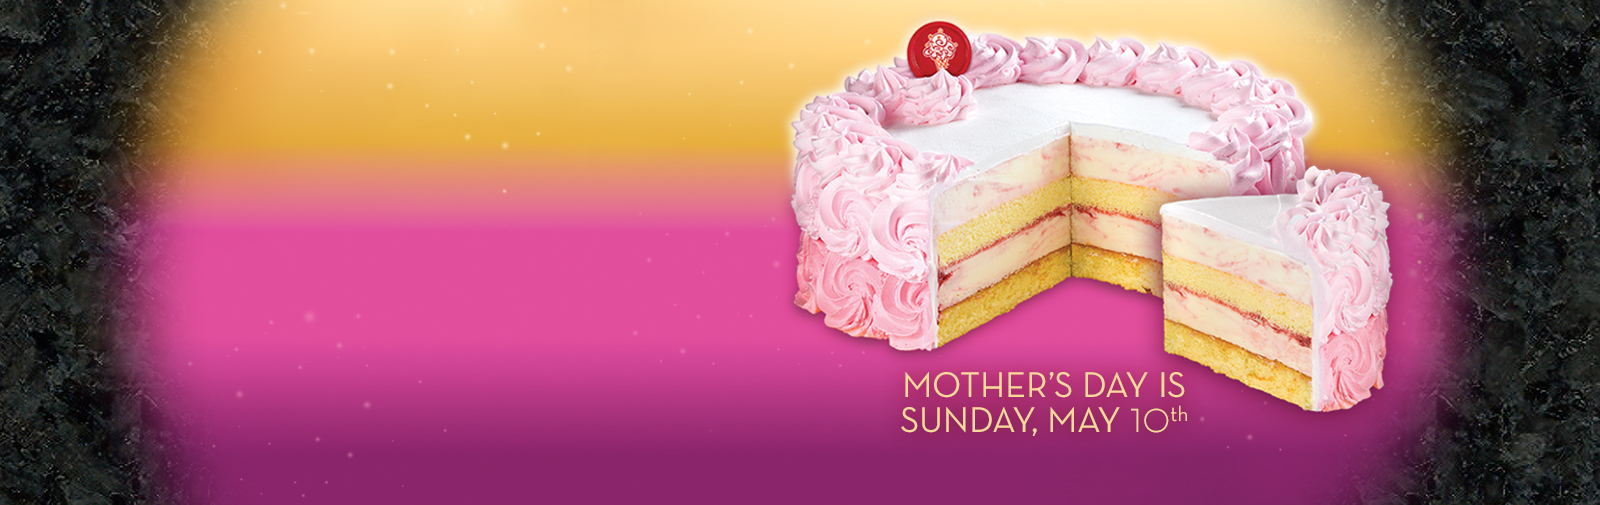 Handcrafted and Made Fresh Just for Mom